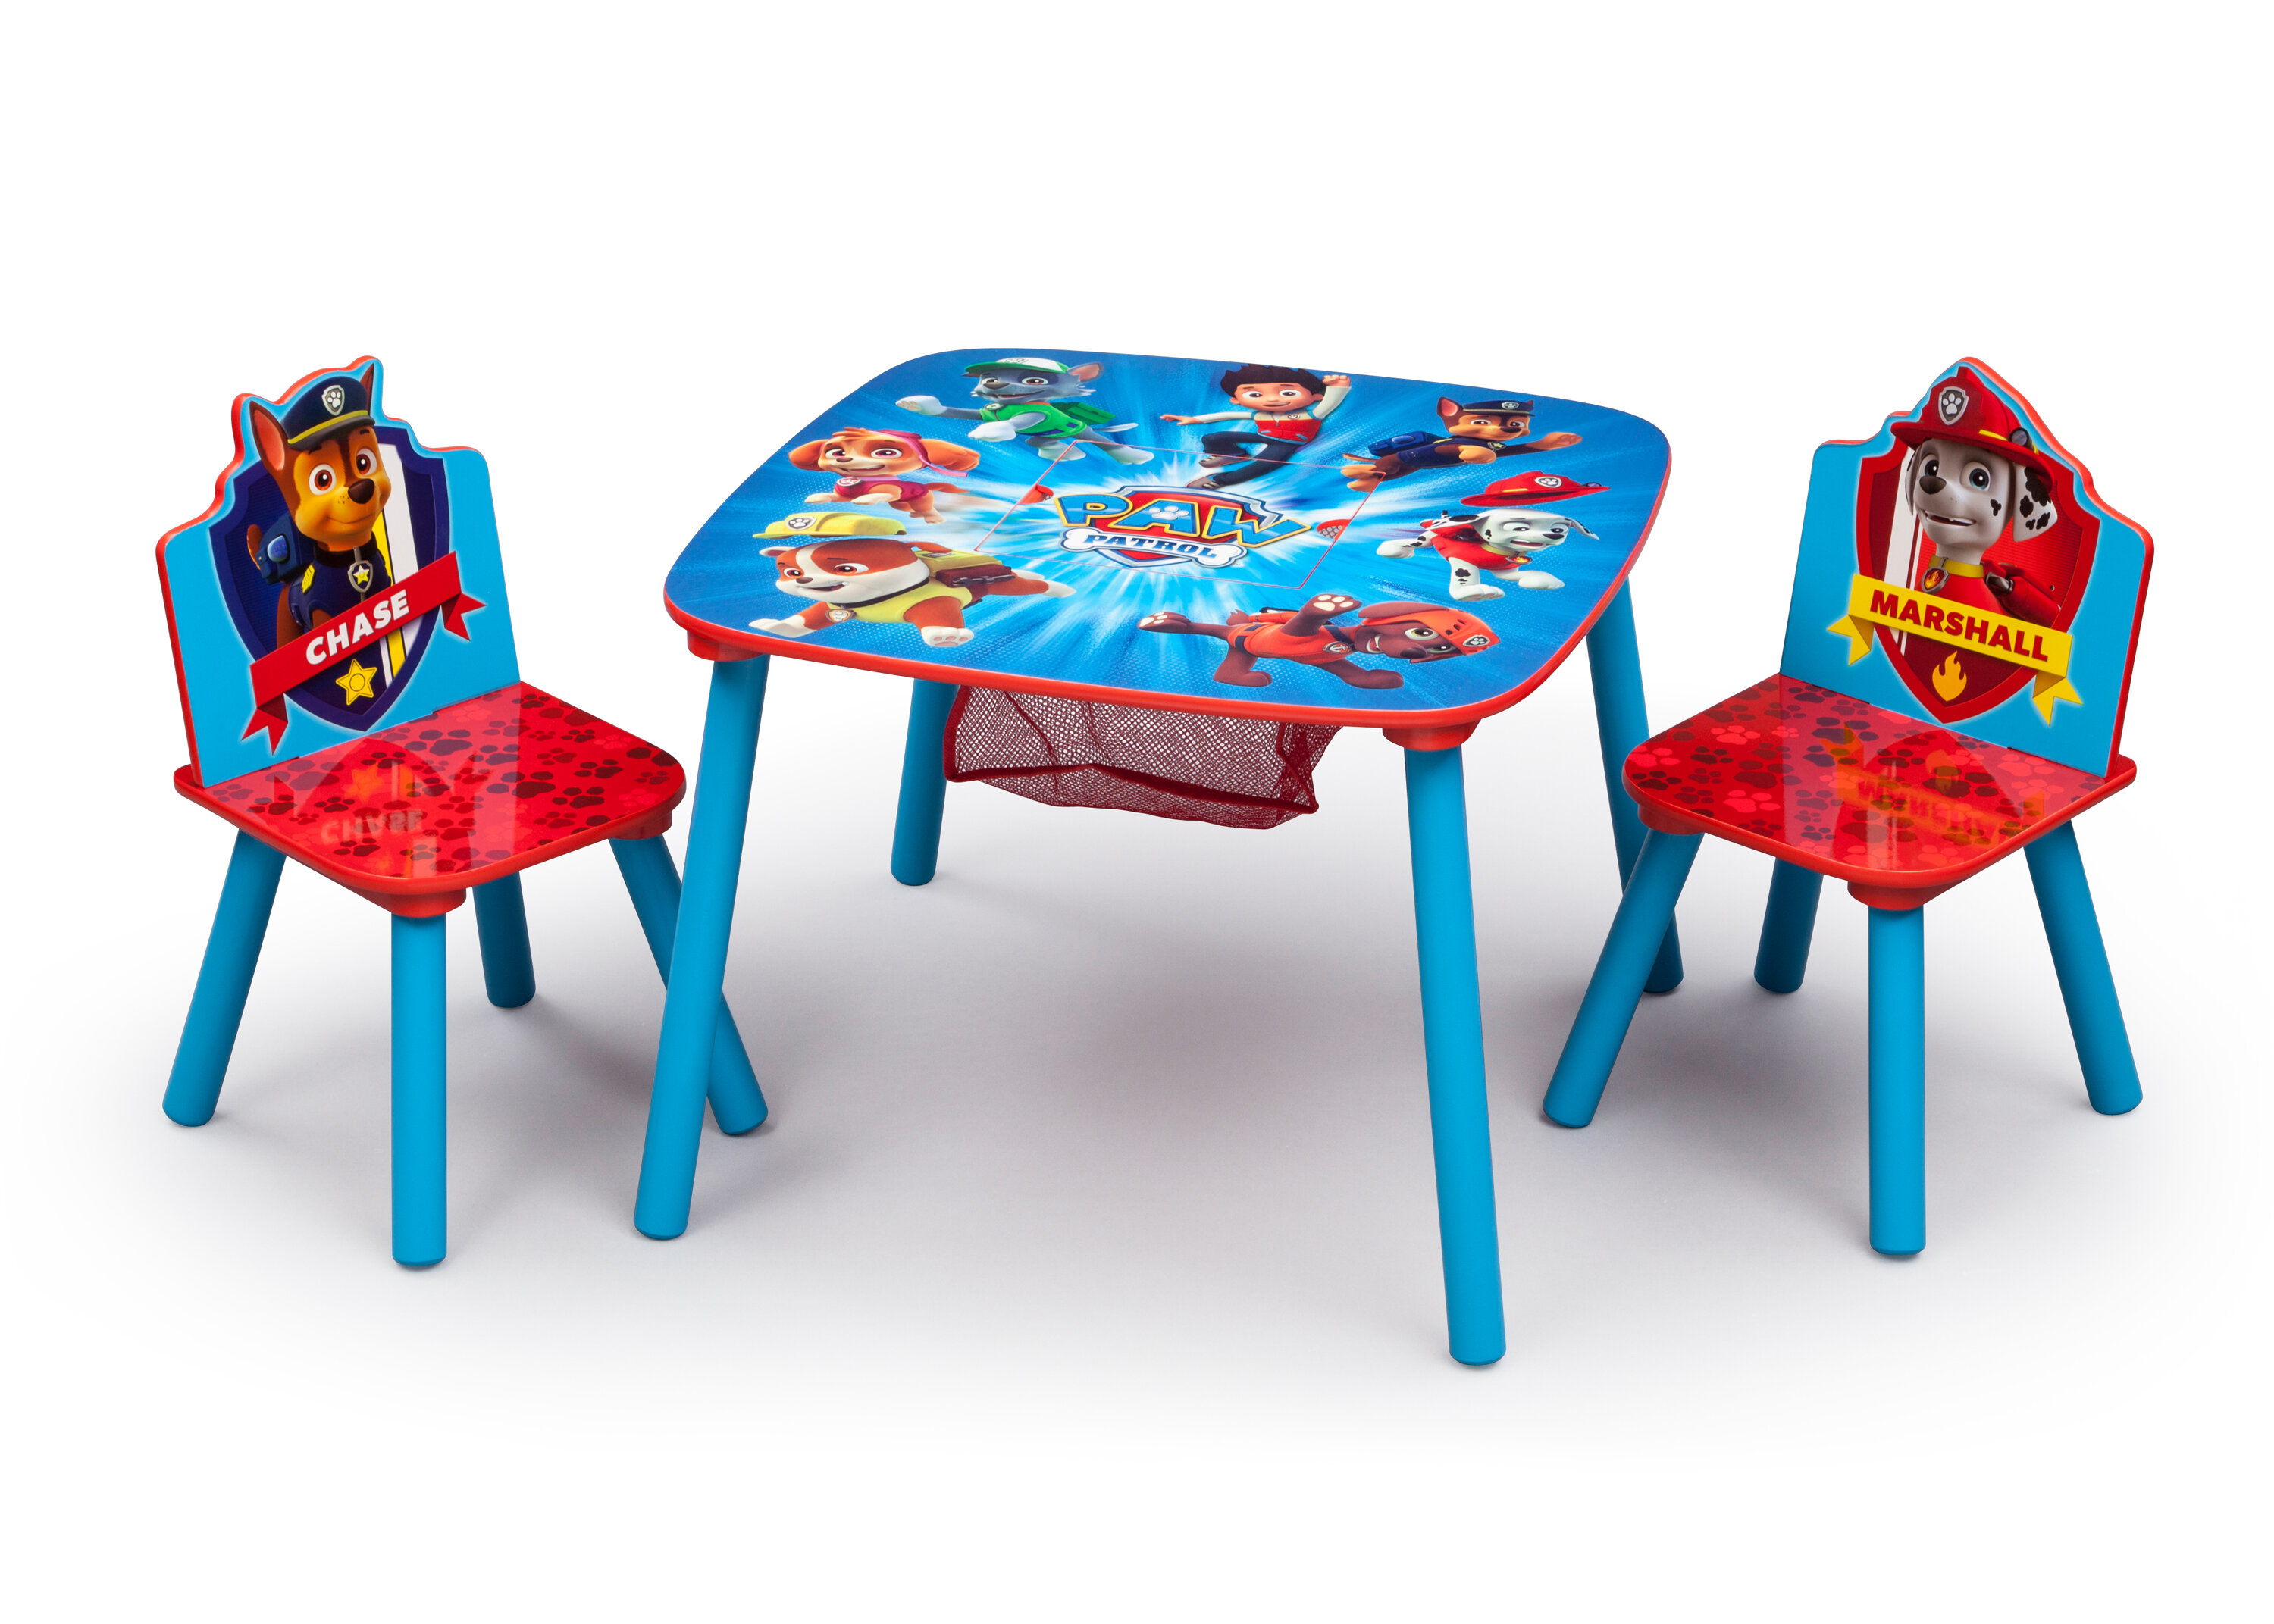 hack and child long with children seat decor childrens chairs s chair table designs mirabrandedkids eating